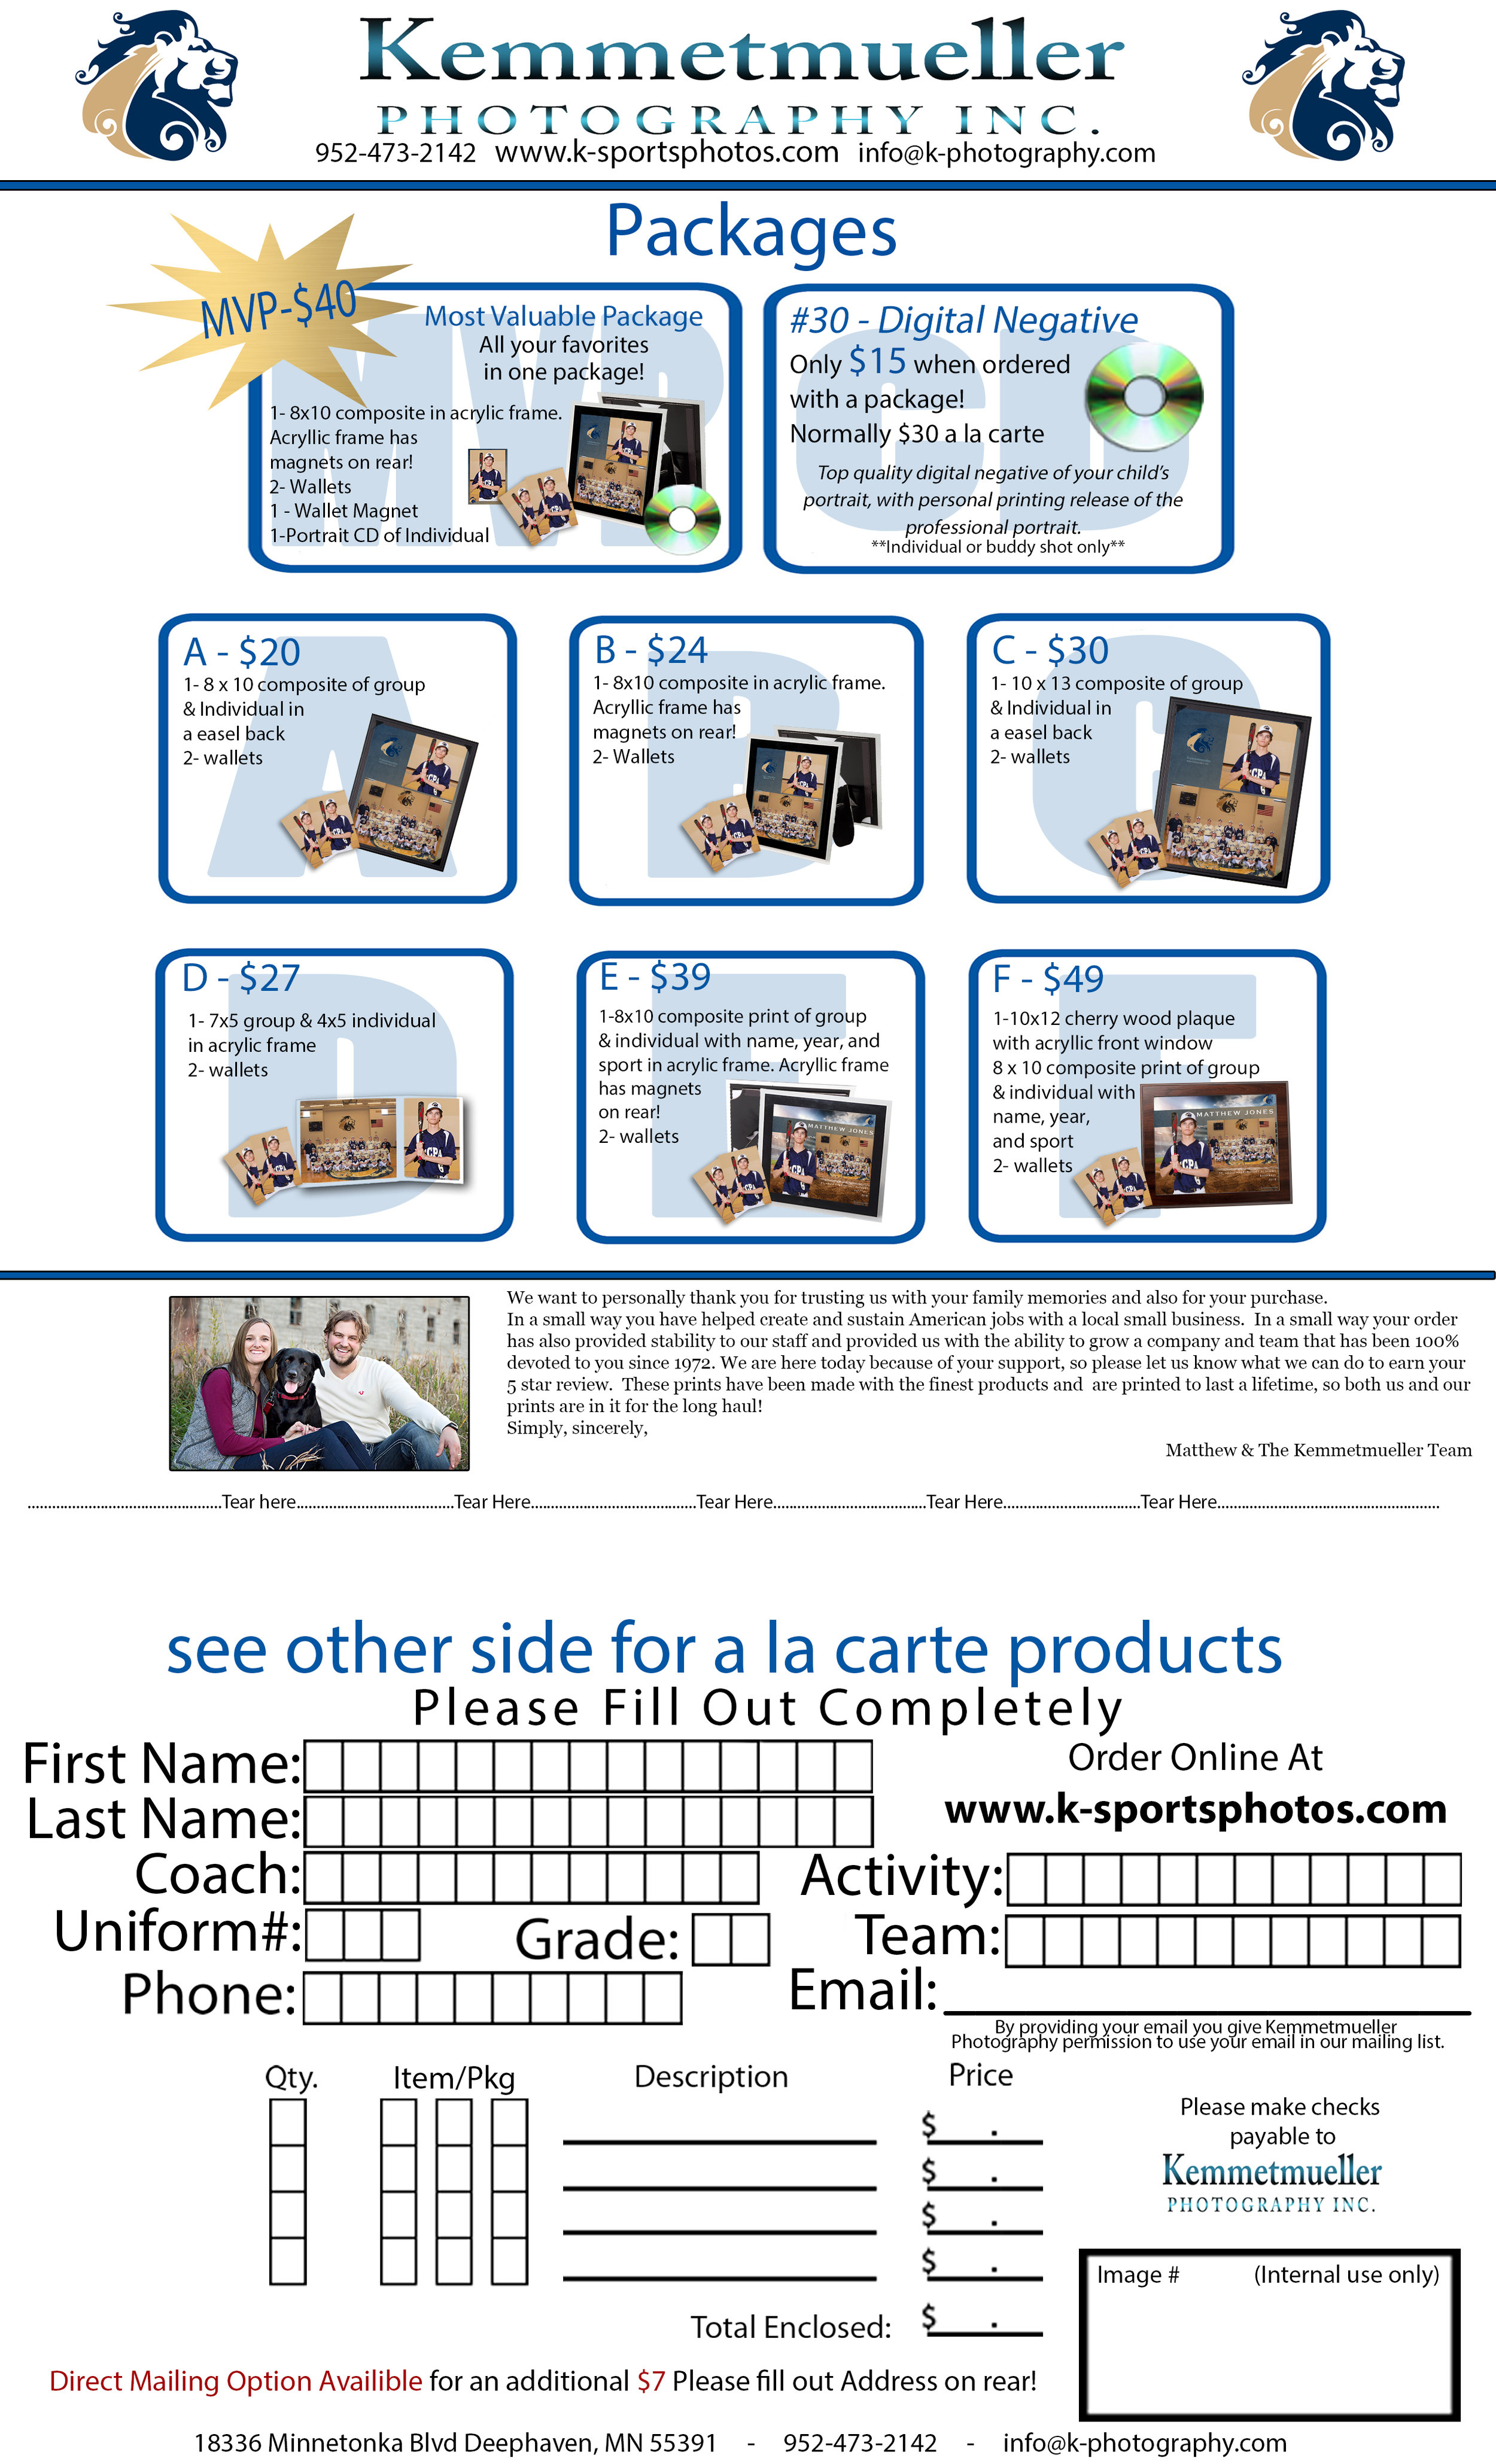 Pricing & Products